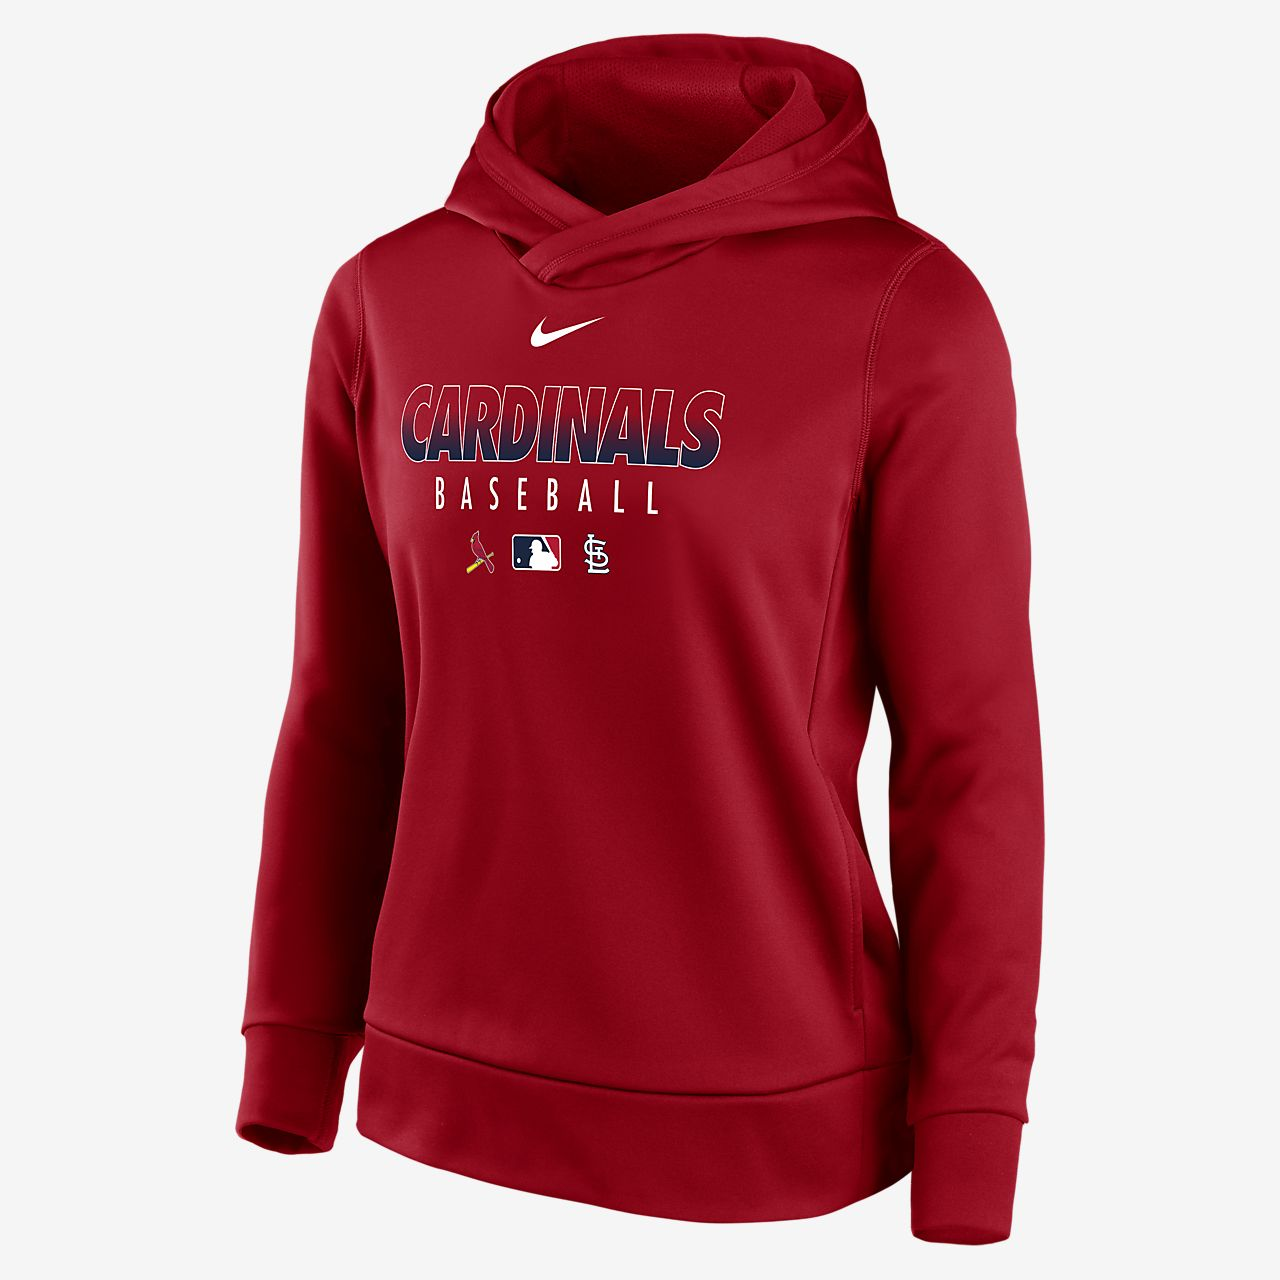 Nike Therma (MLB St. Louis Cardinals) Women's Pullover Hoodie